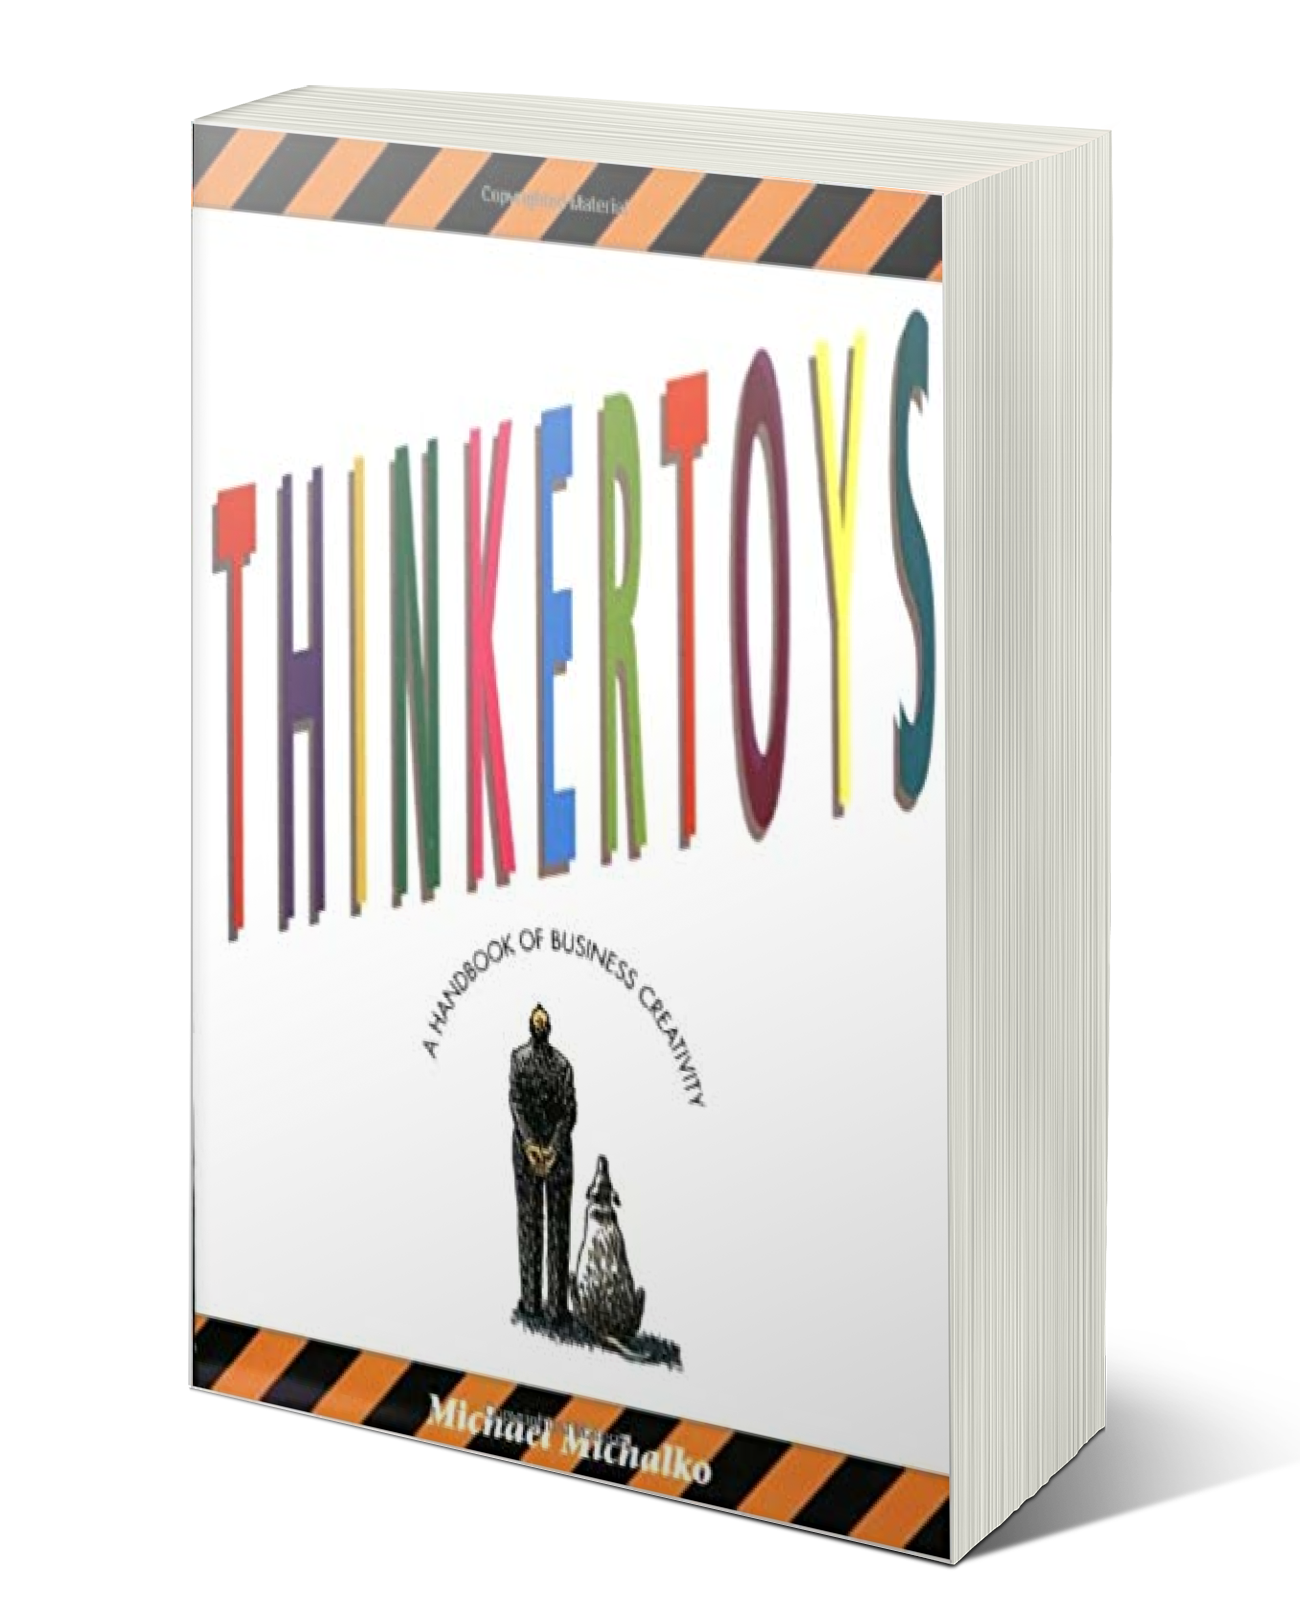 Thinkertoys_.1_3D.png